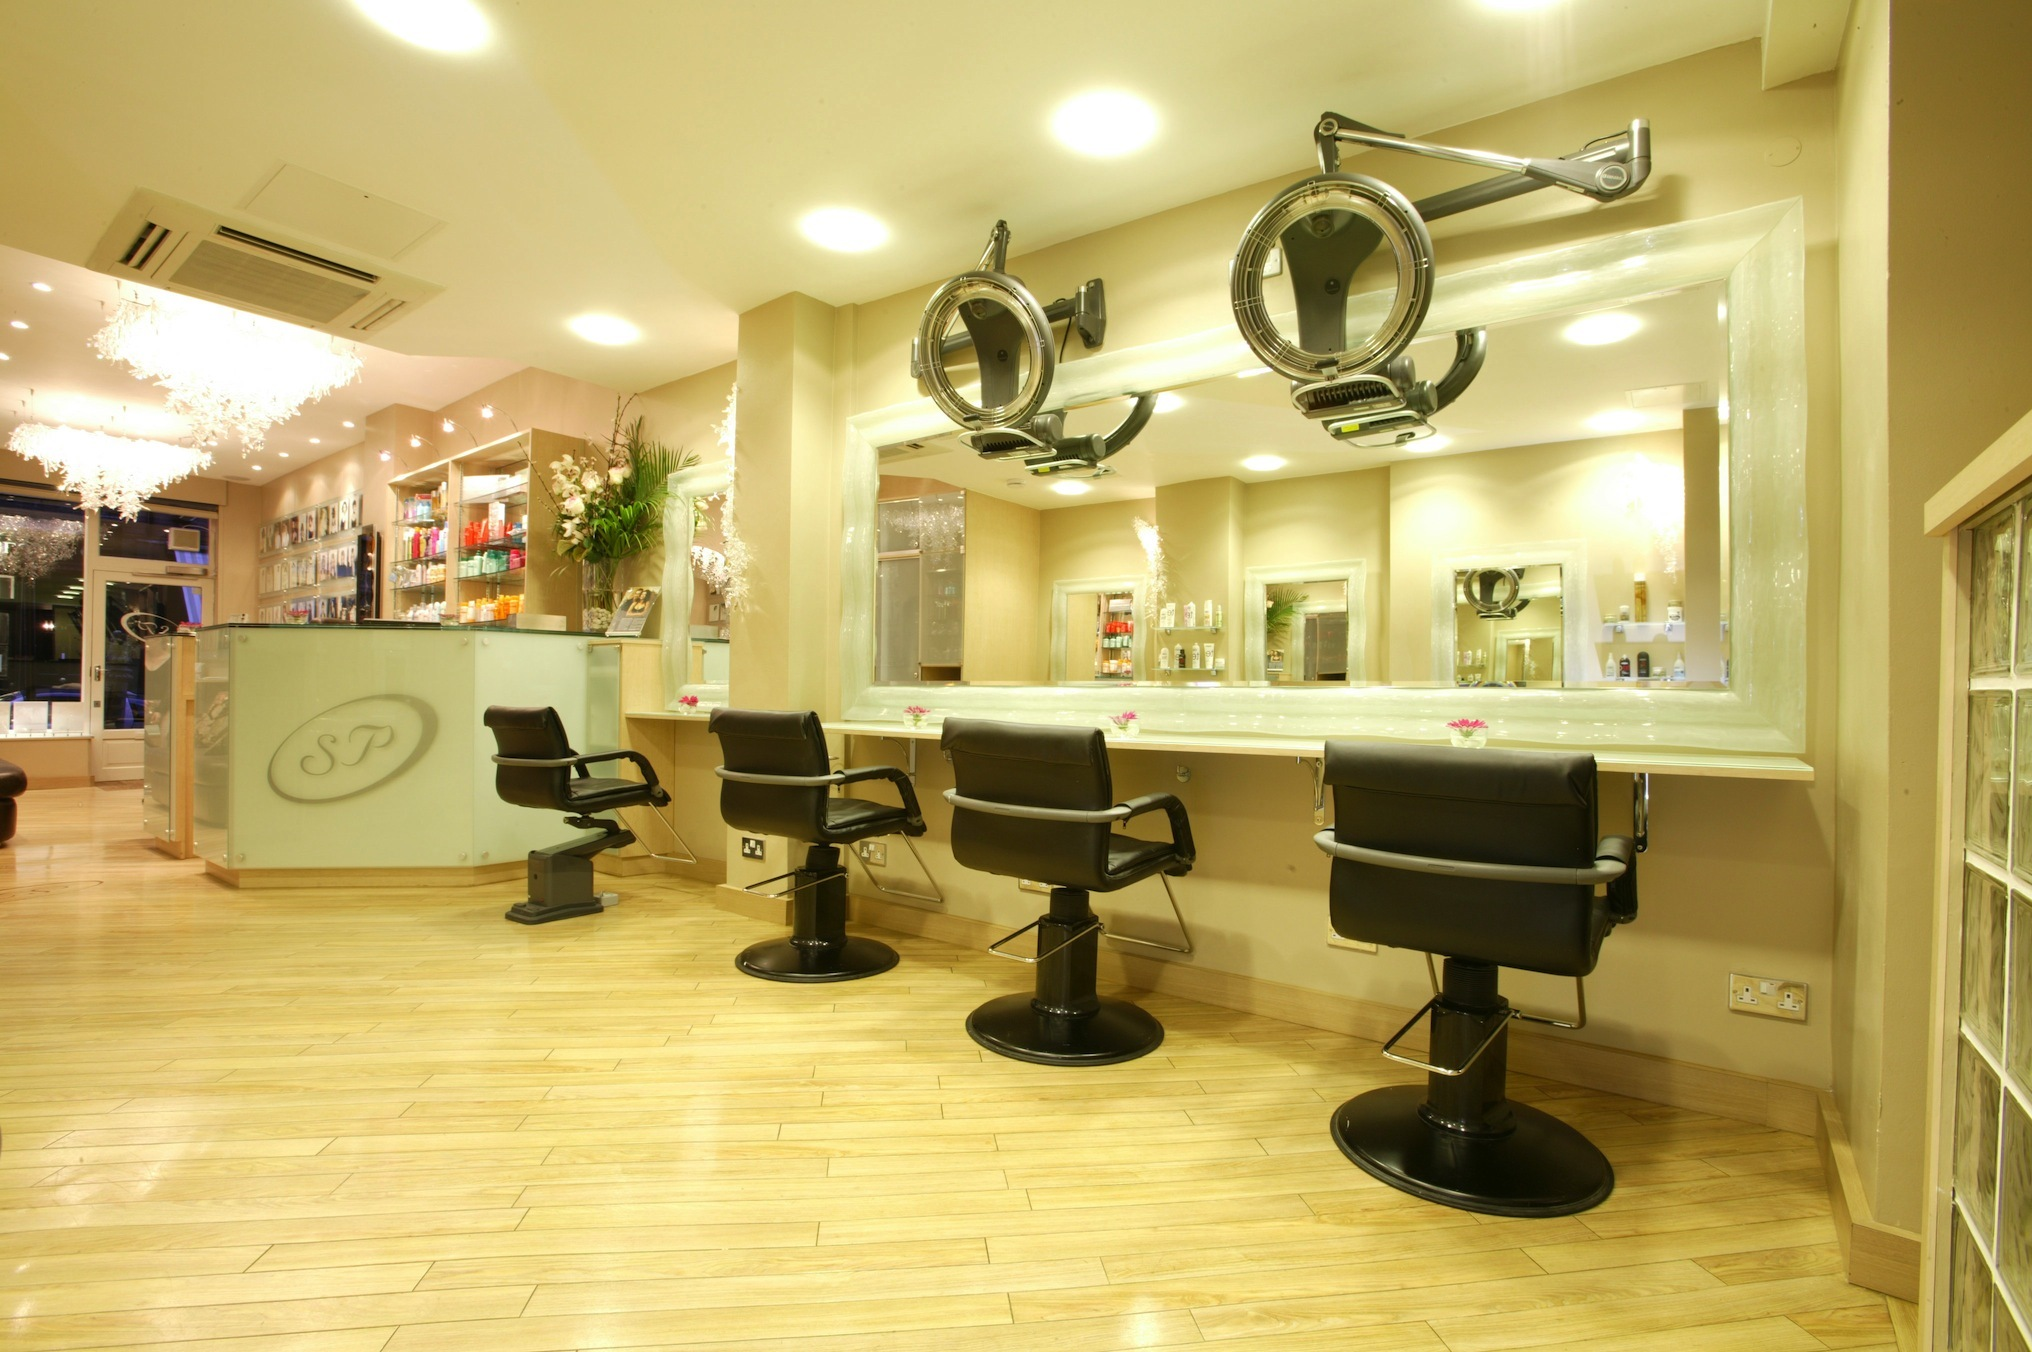 London 39 s best free haircuts cheap haircuts time out london for Interieur stylist